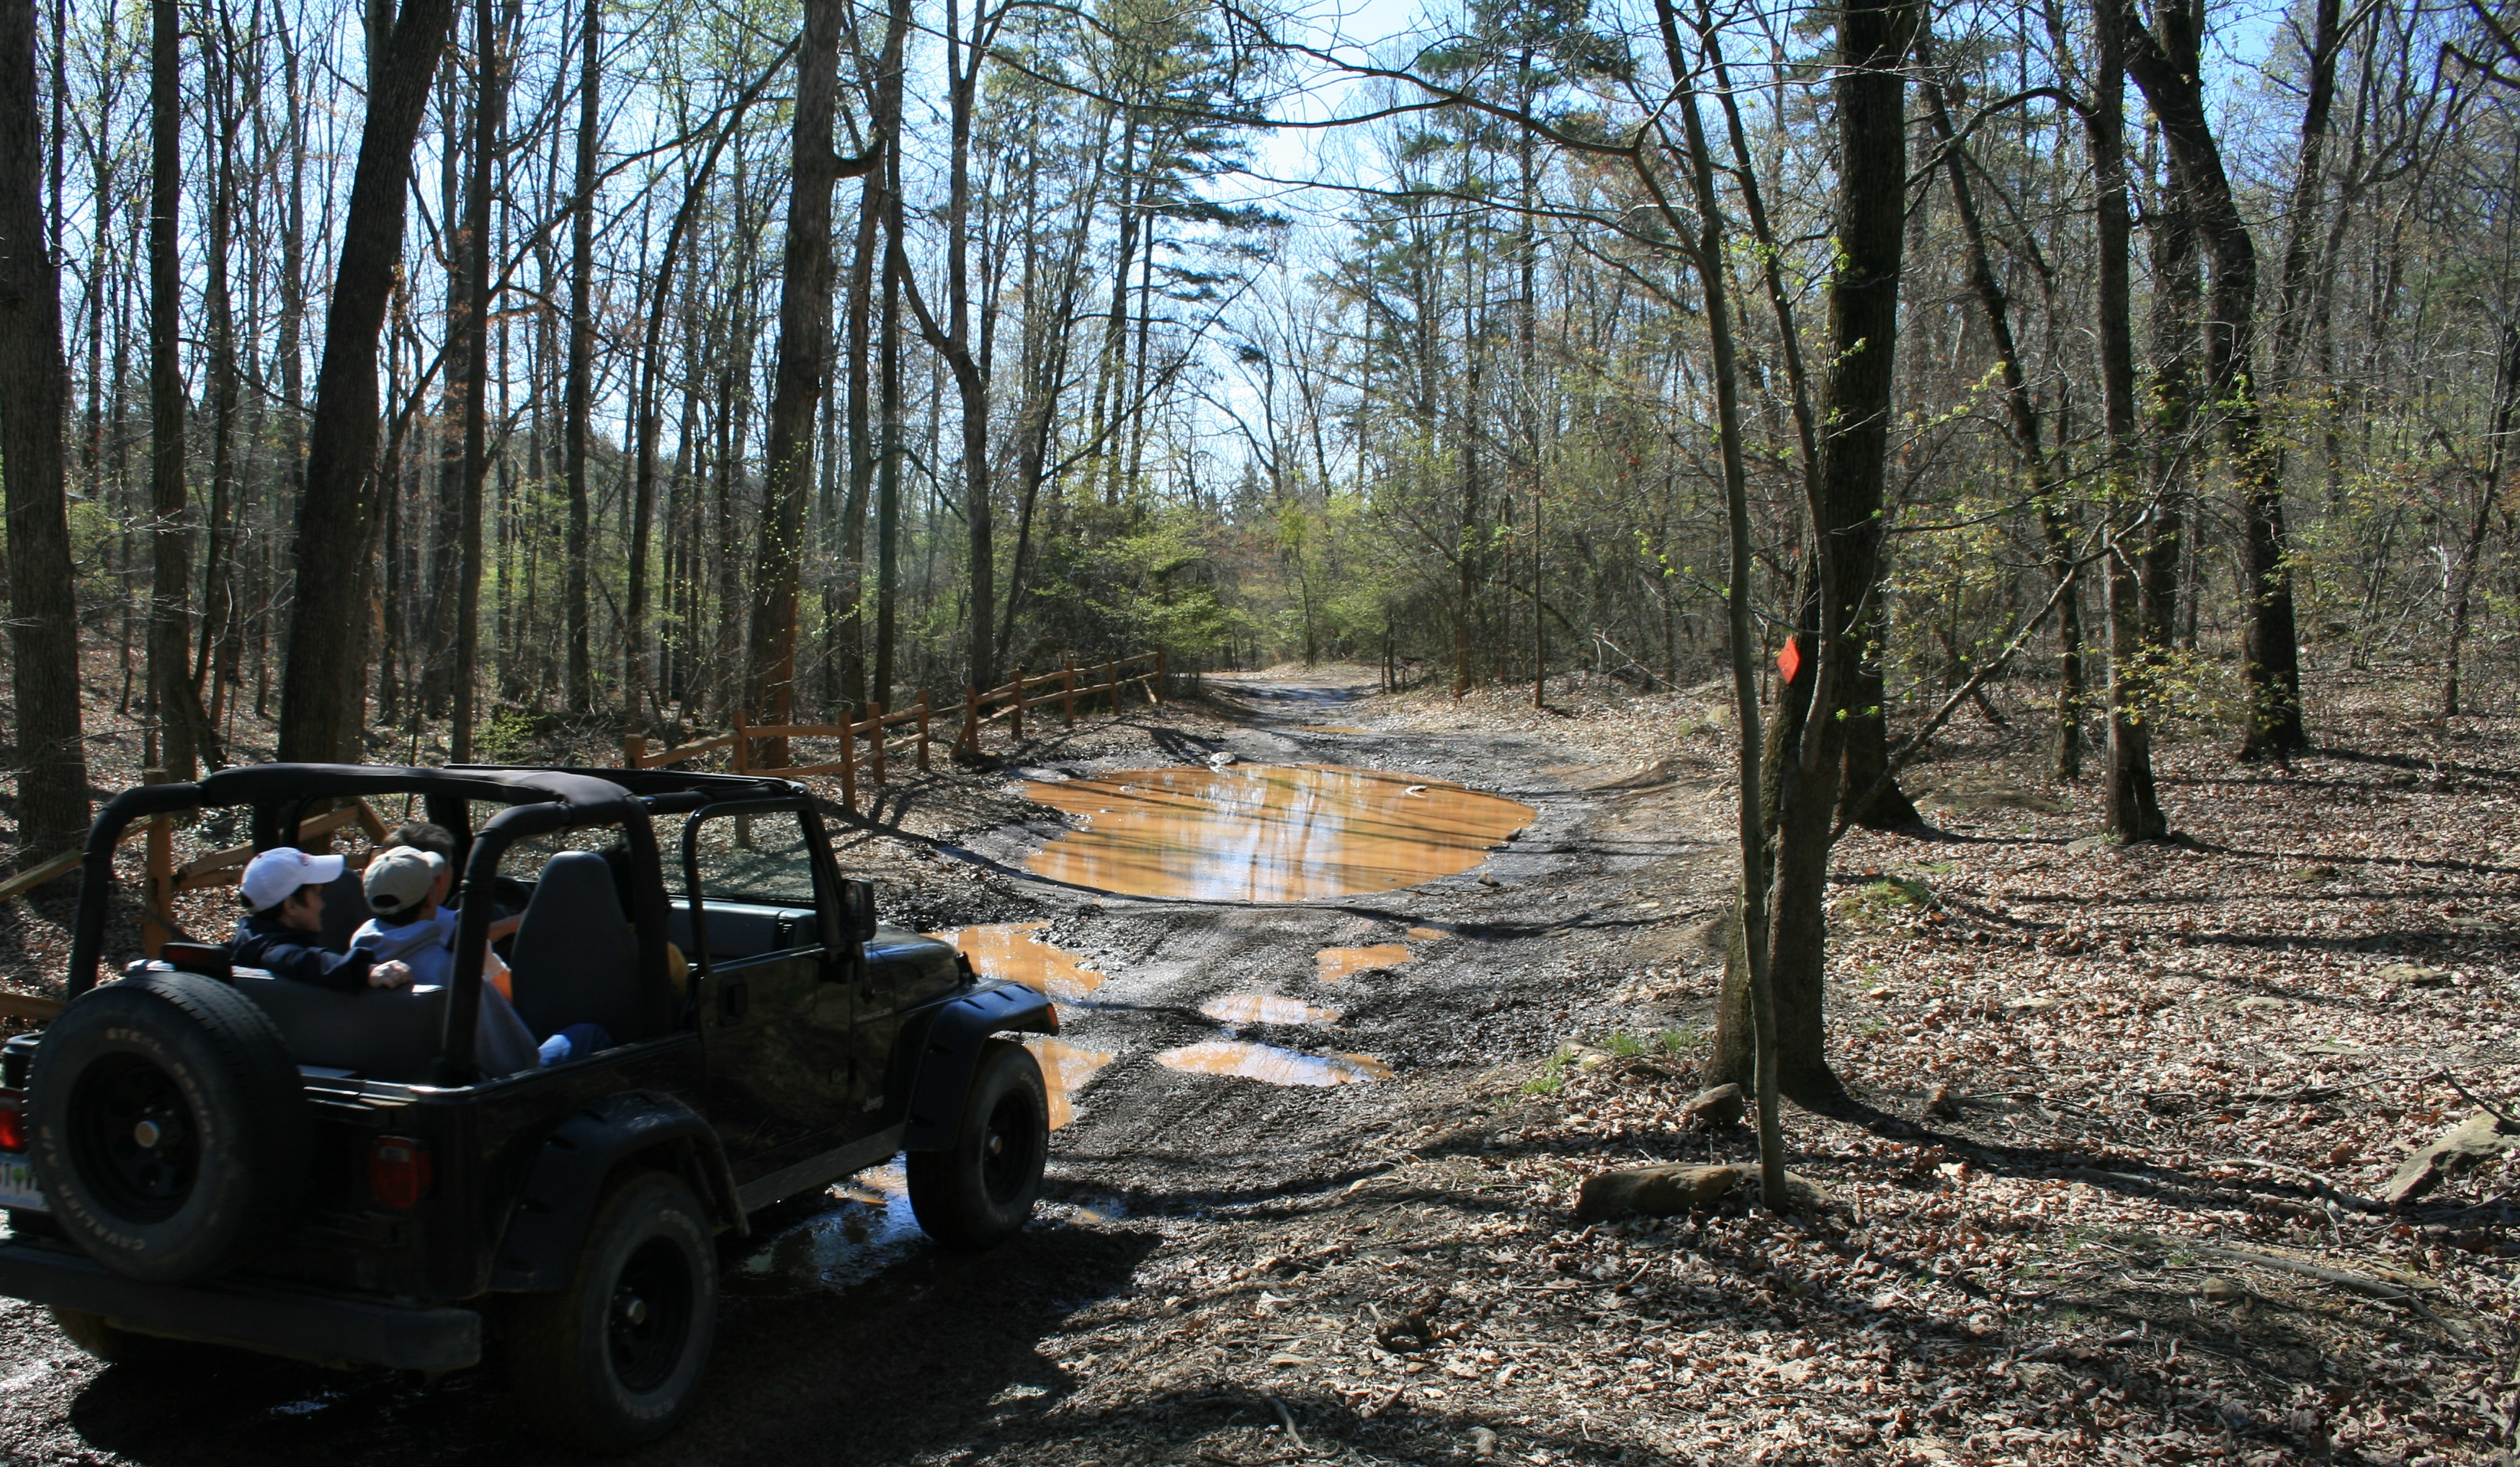 JEEP - OHV TRAIL